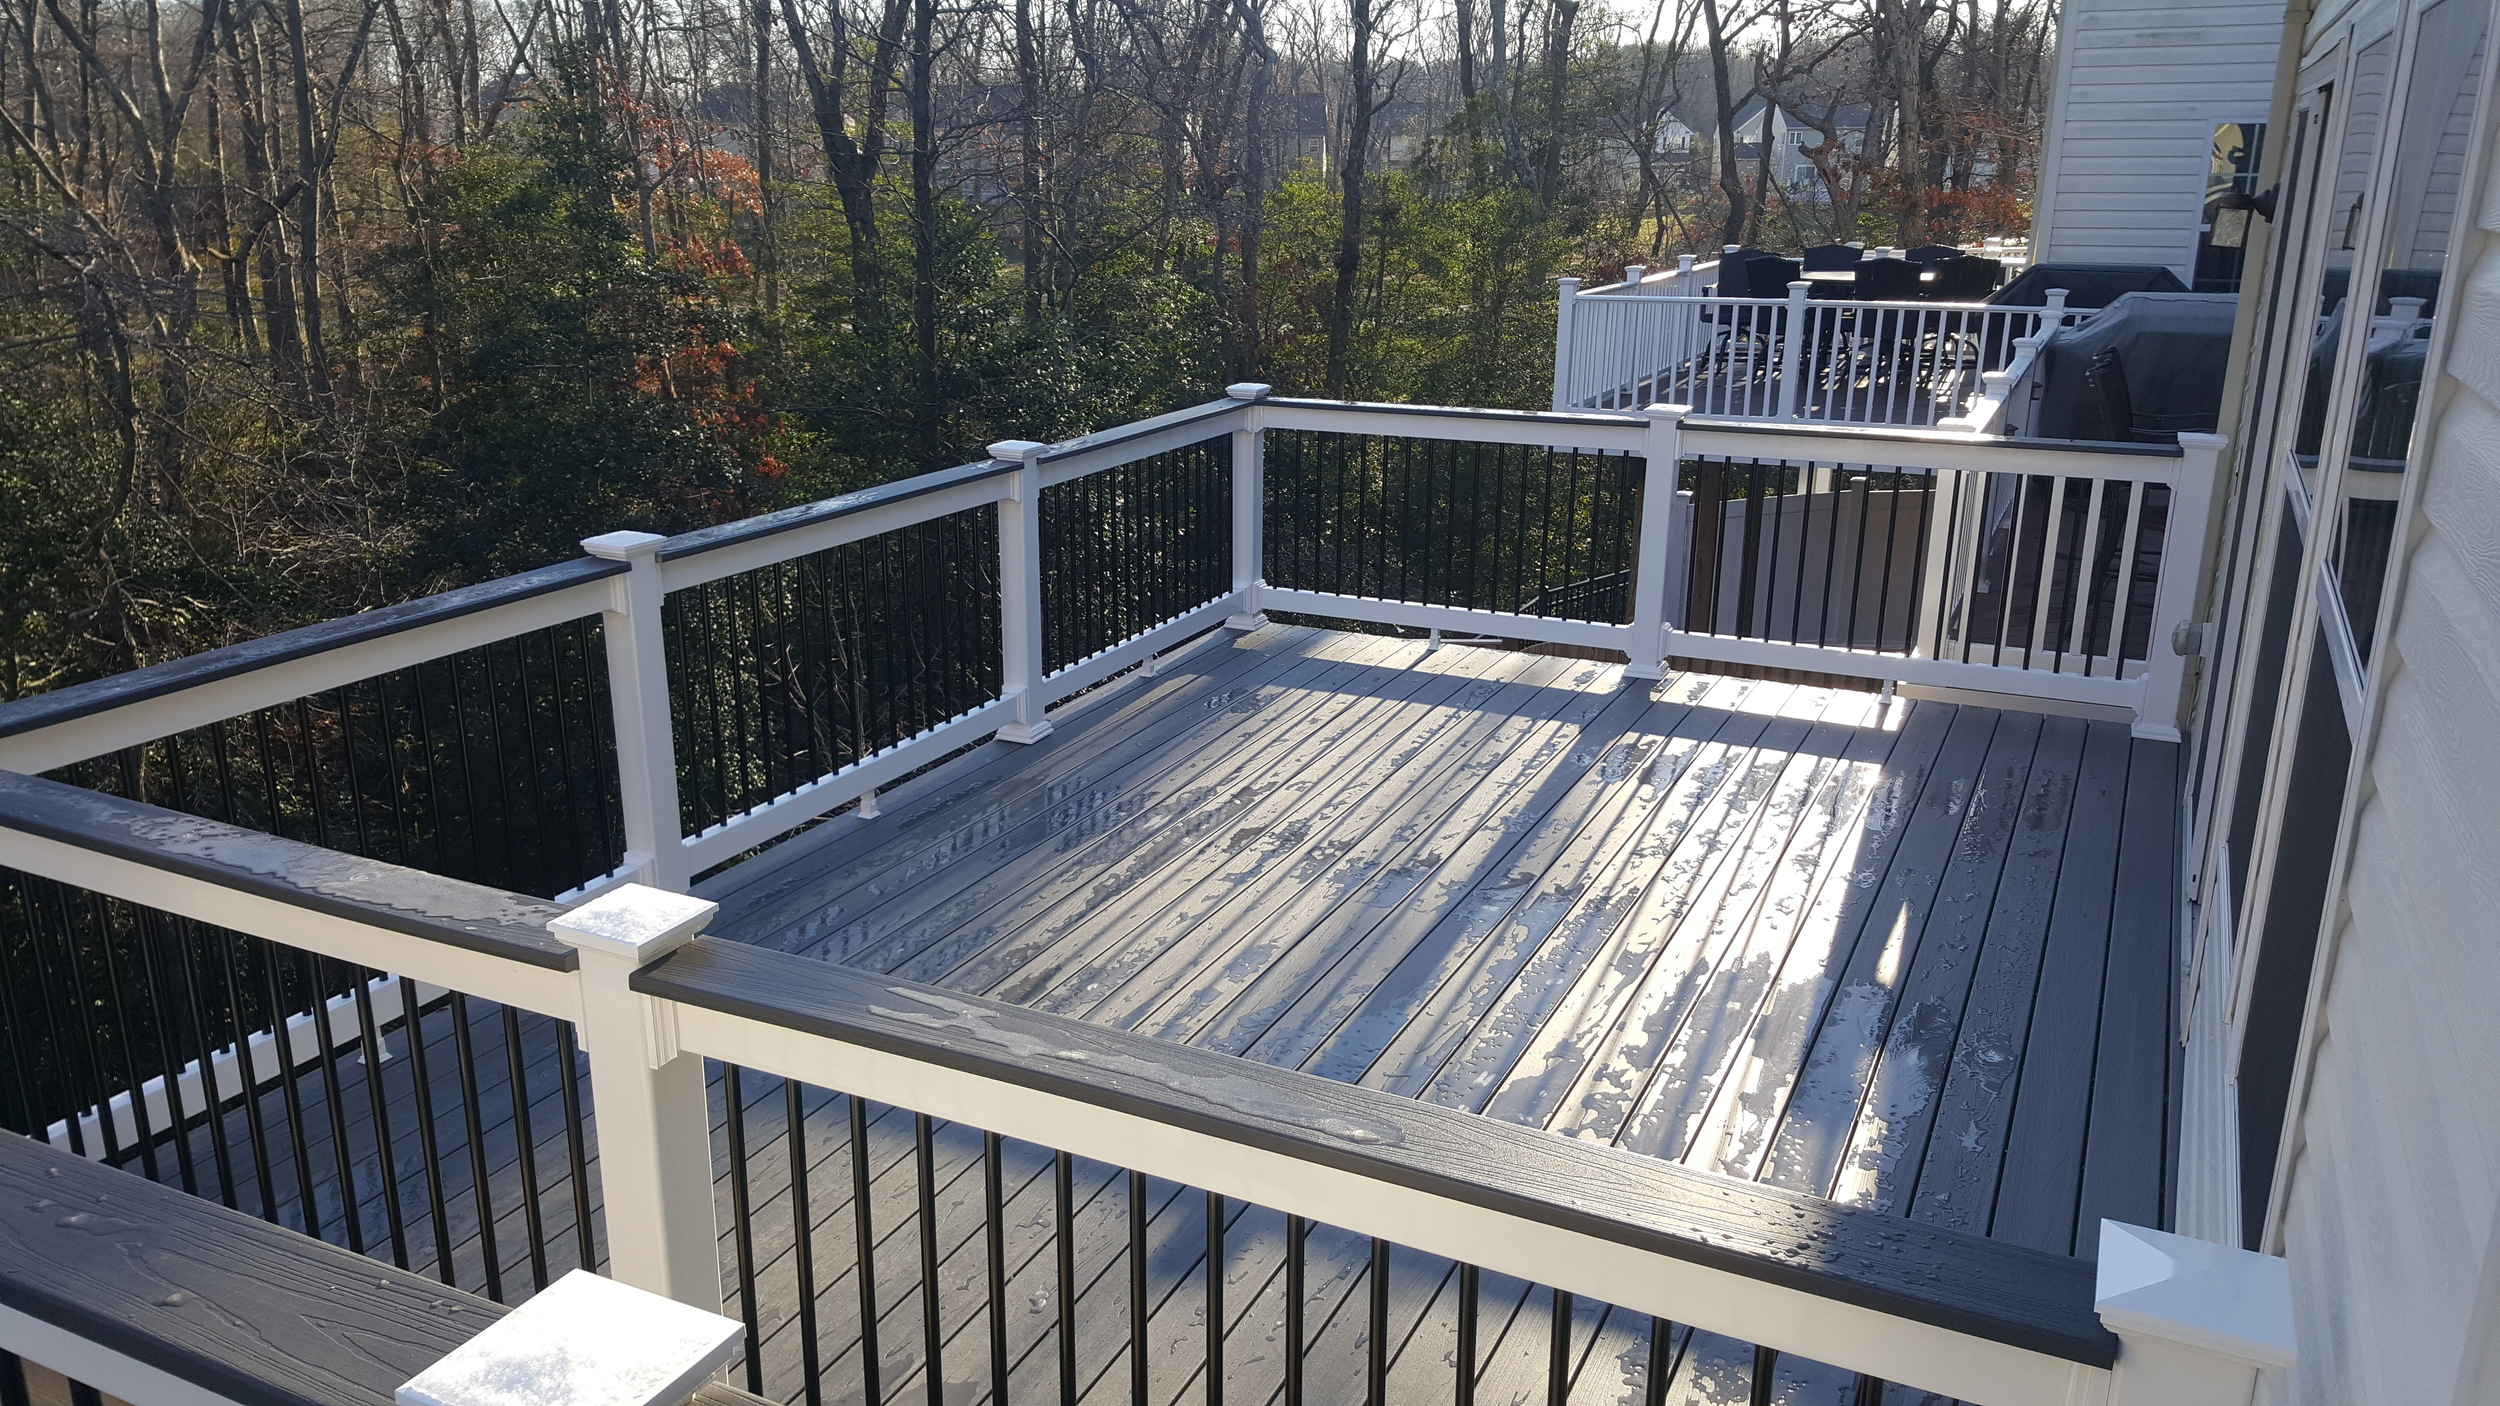 Fiberon Gray Birch decking, Monument rails with Black Aluminum Balusters and Decking toppers. Tiger claw hidden fasteners.